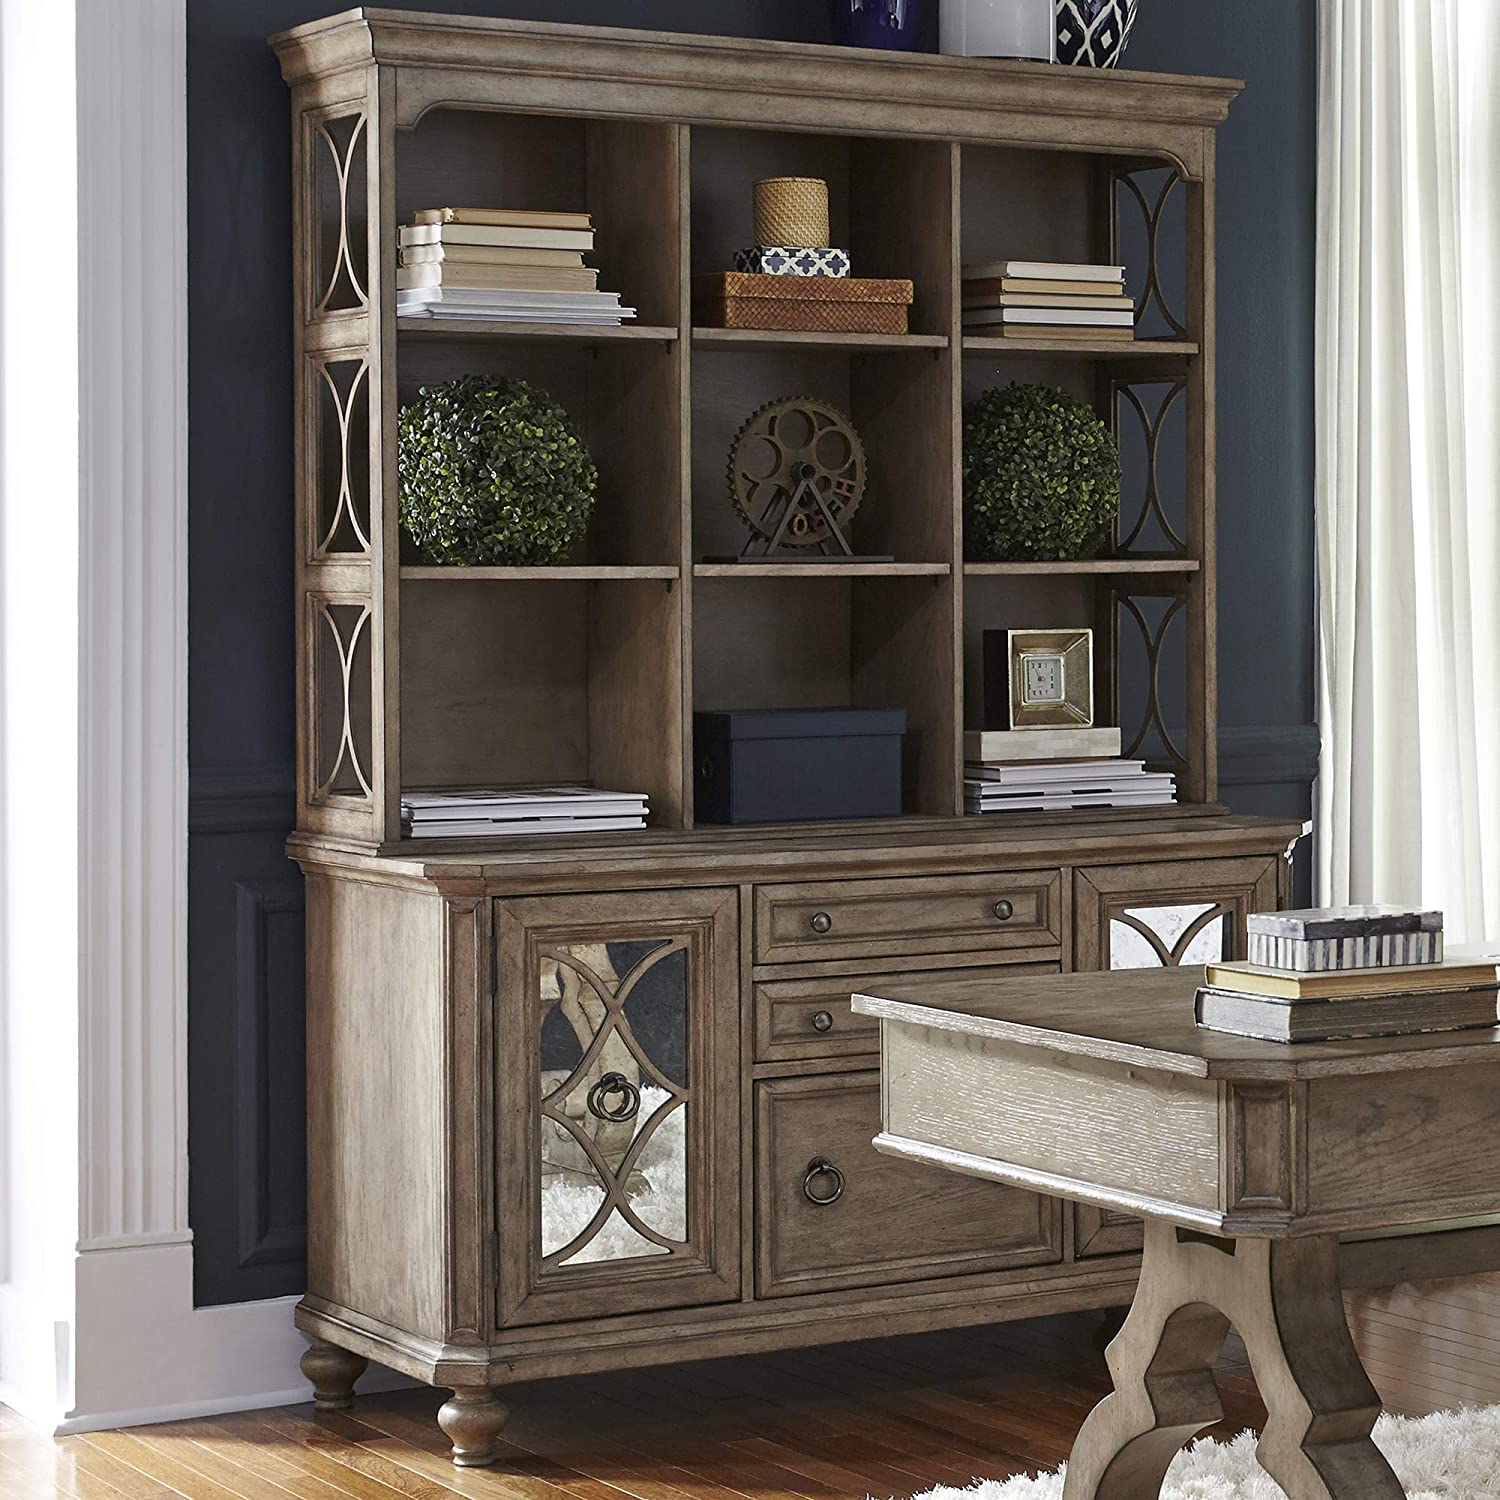 Liberty Furniture Simply Elegant Special price for a limited time Credenza W56 Set x D22 Hutch Tampa Mall